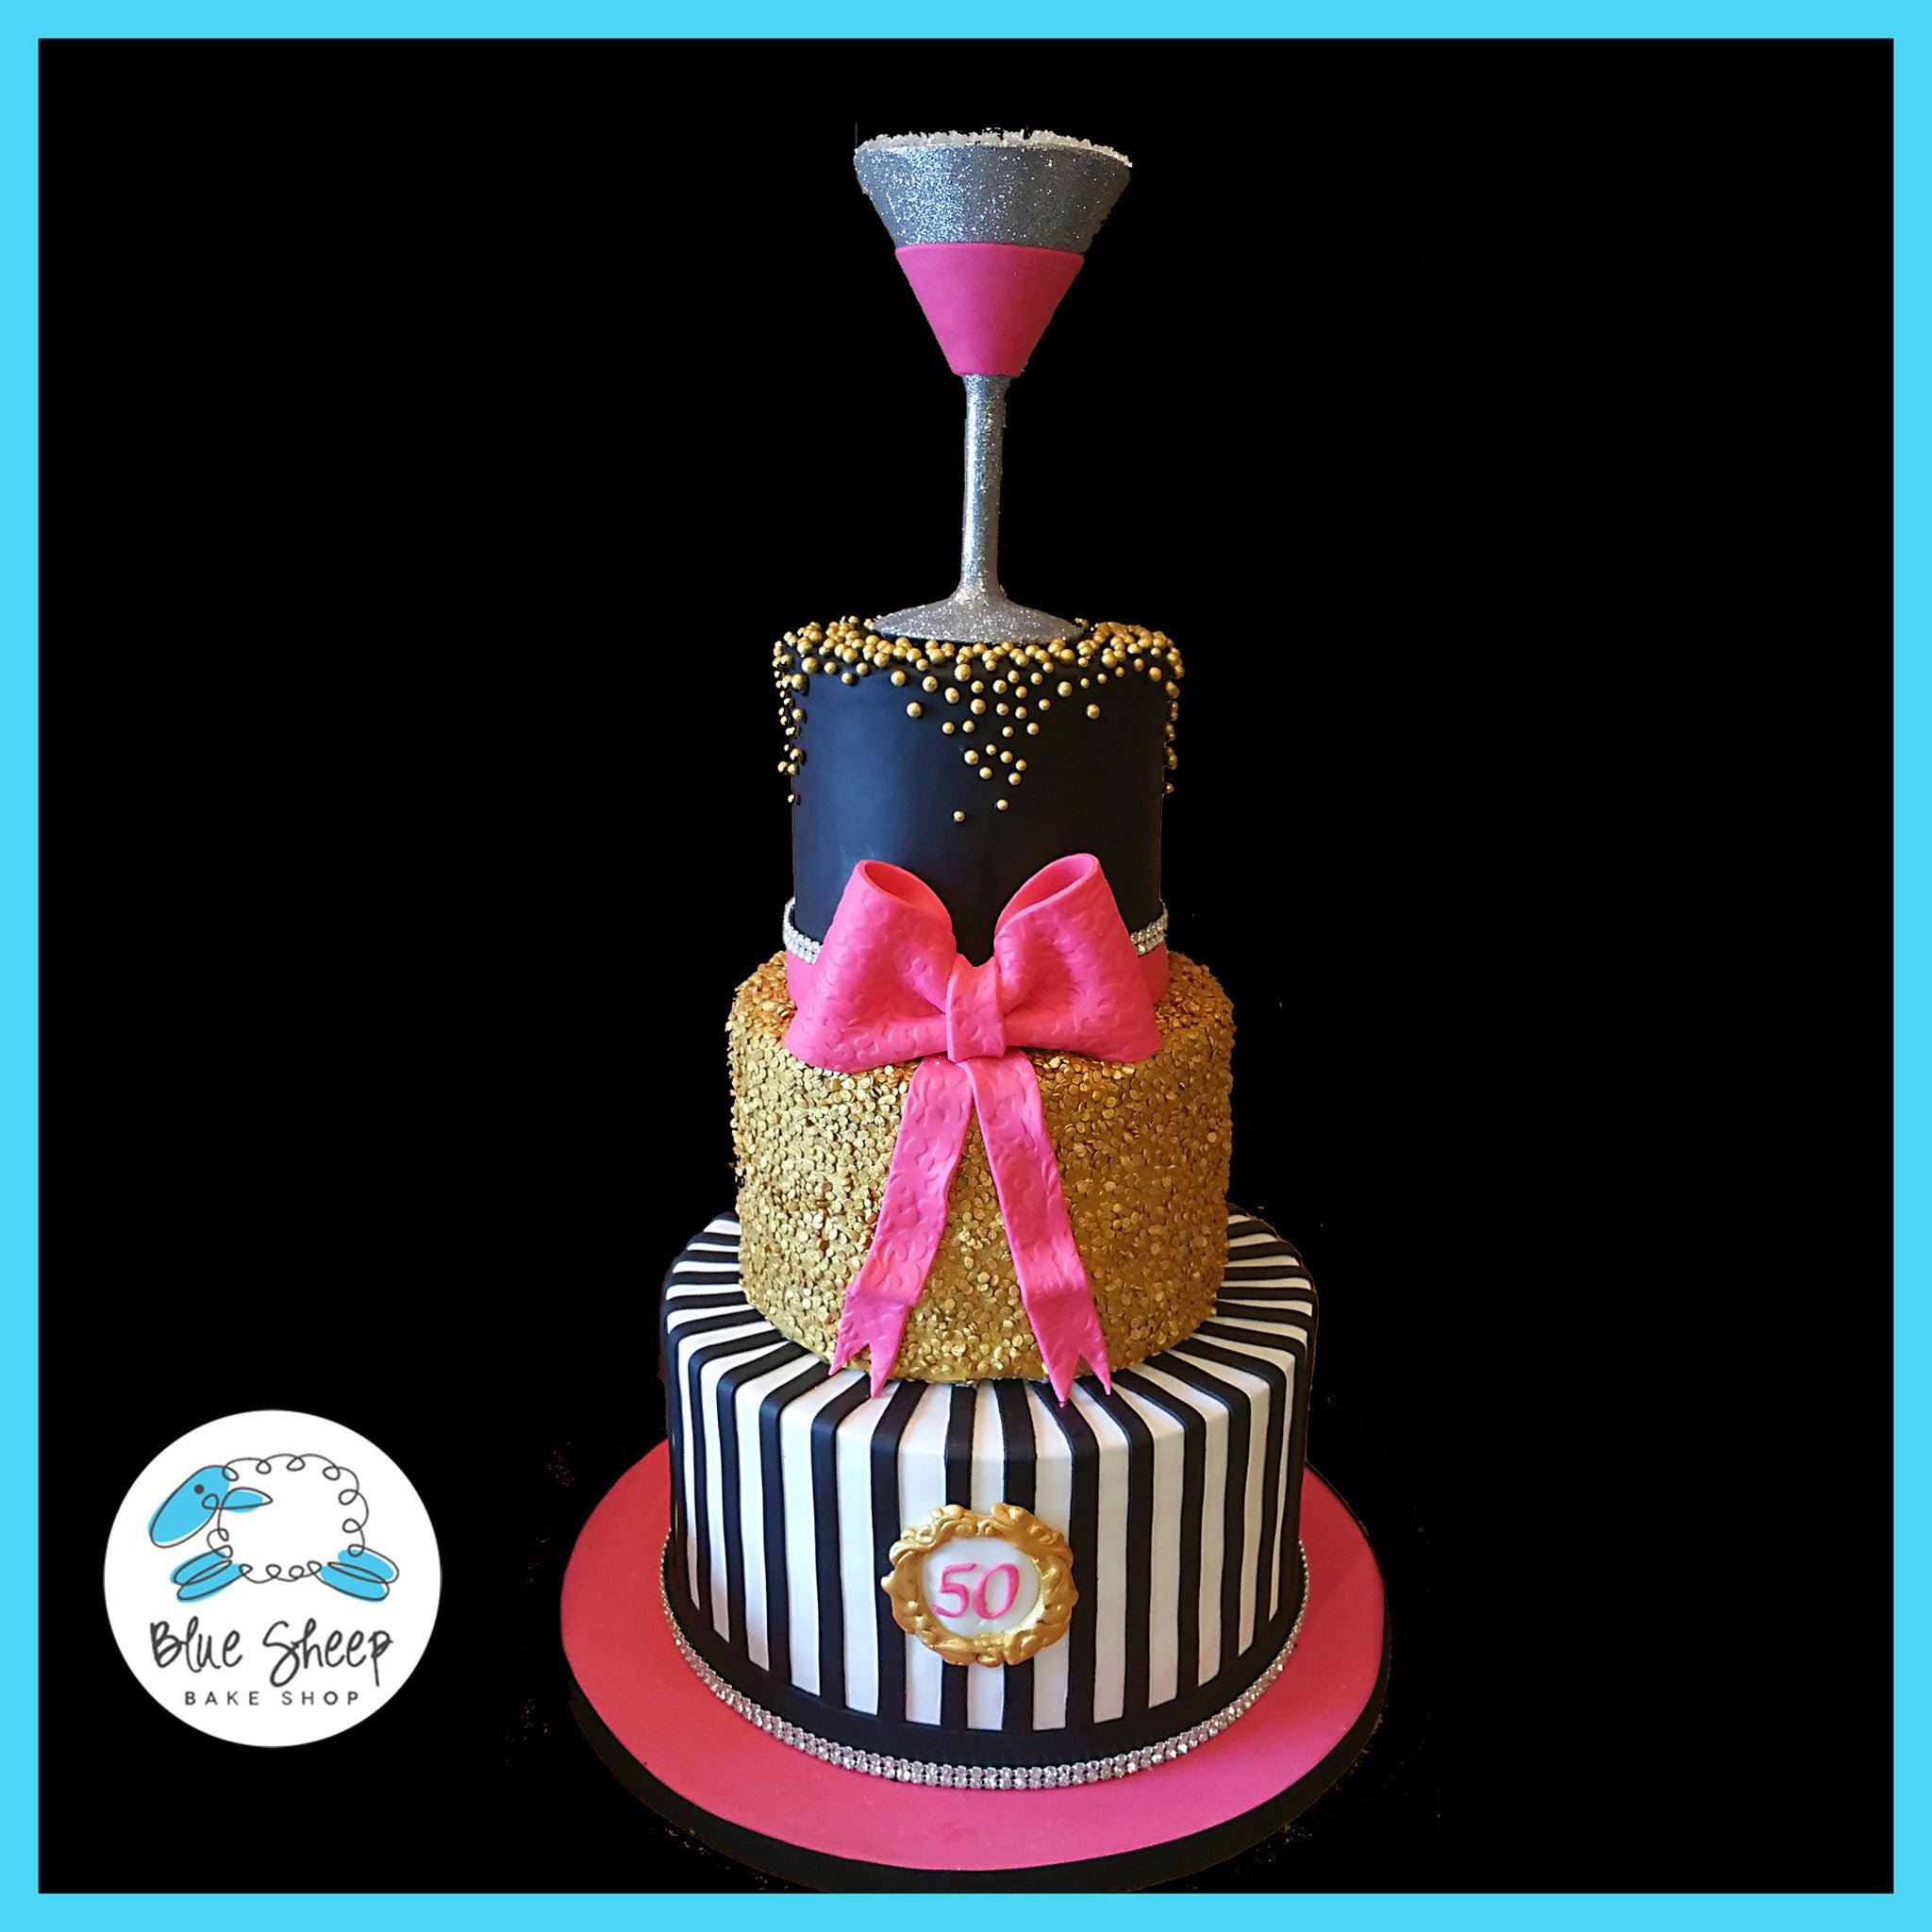 Pink Black And Gold 50th Birthday Cake Blue Sheep Bake Shop